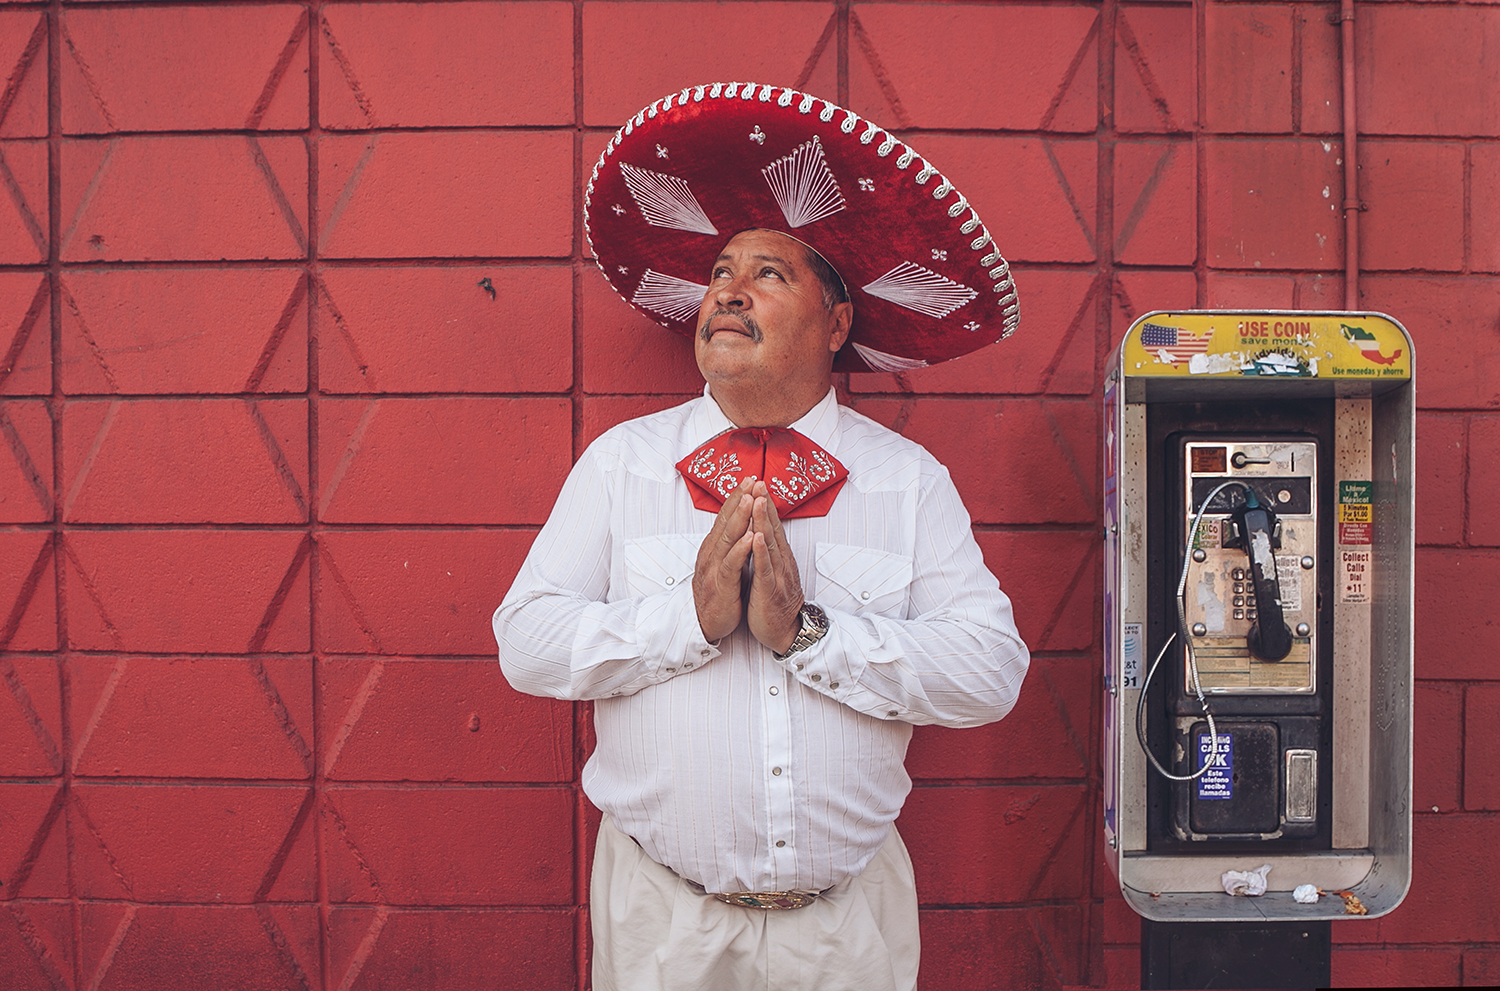 I was strolling along China town, when I noticed this man dressed in traditional mariachi attire. I approached him and asked where he was coming from. He said that he was a singer at church, I was surprised because I assumed it would've been some kind of Mexican restaurant where he maybe plays or sings. The man was such a gentleman, after making a this image, he wished me luck with blessings and went on his way.